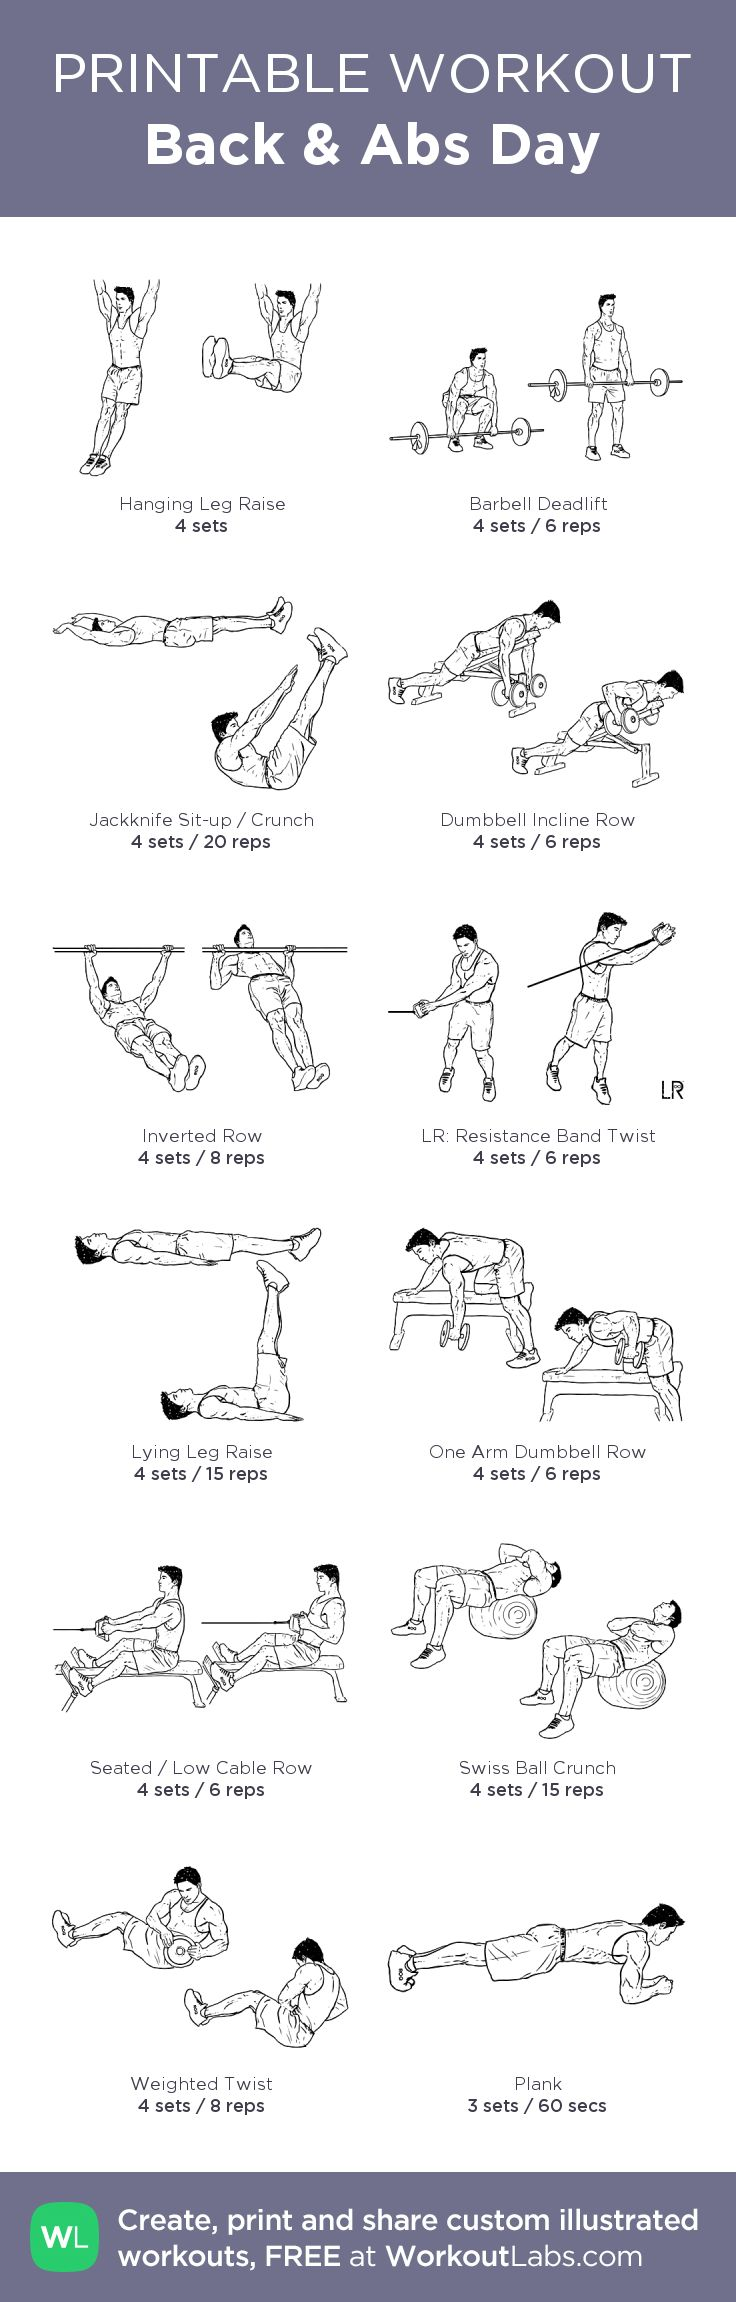 Back & Abs Day: my custom printable workout by @WorkoutLabs #workoutlabs #customworkout